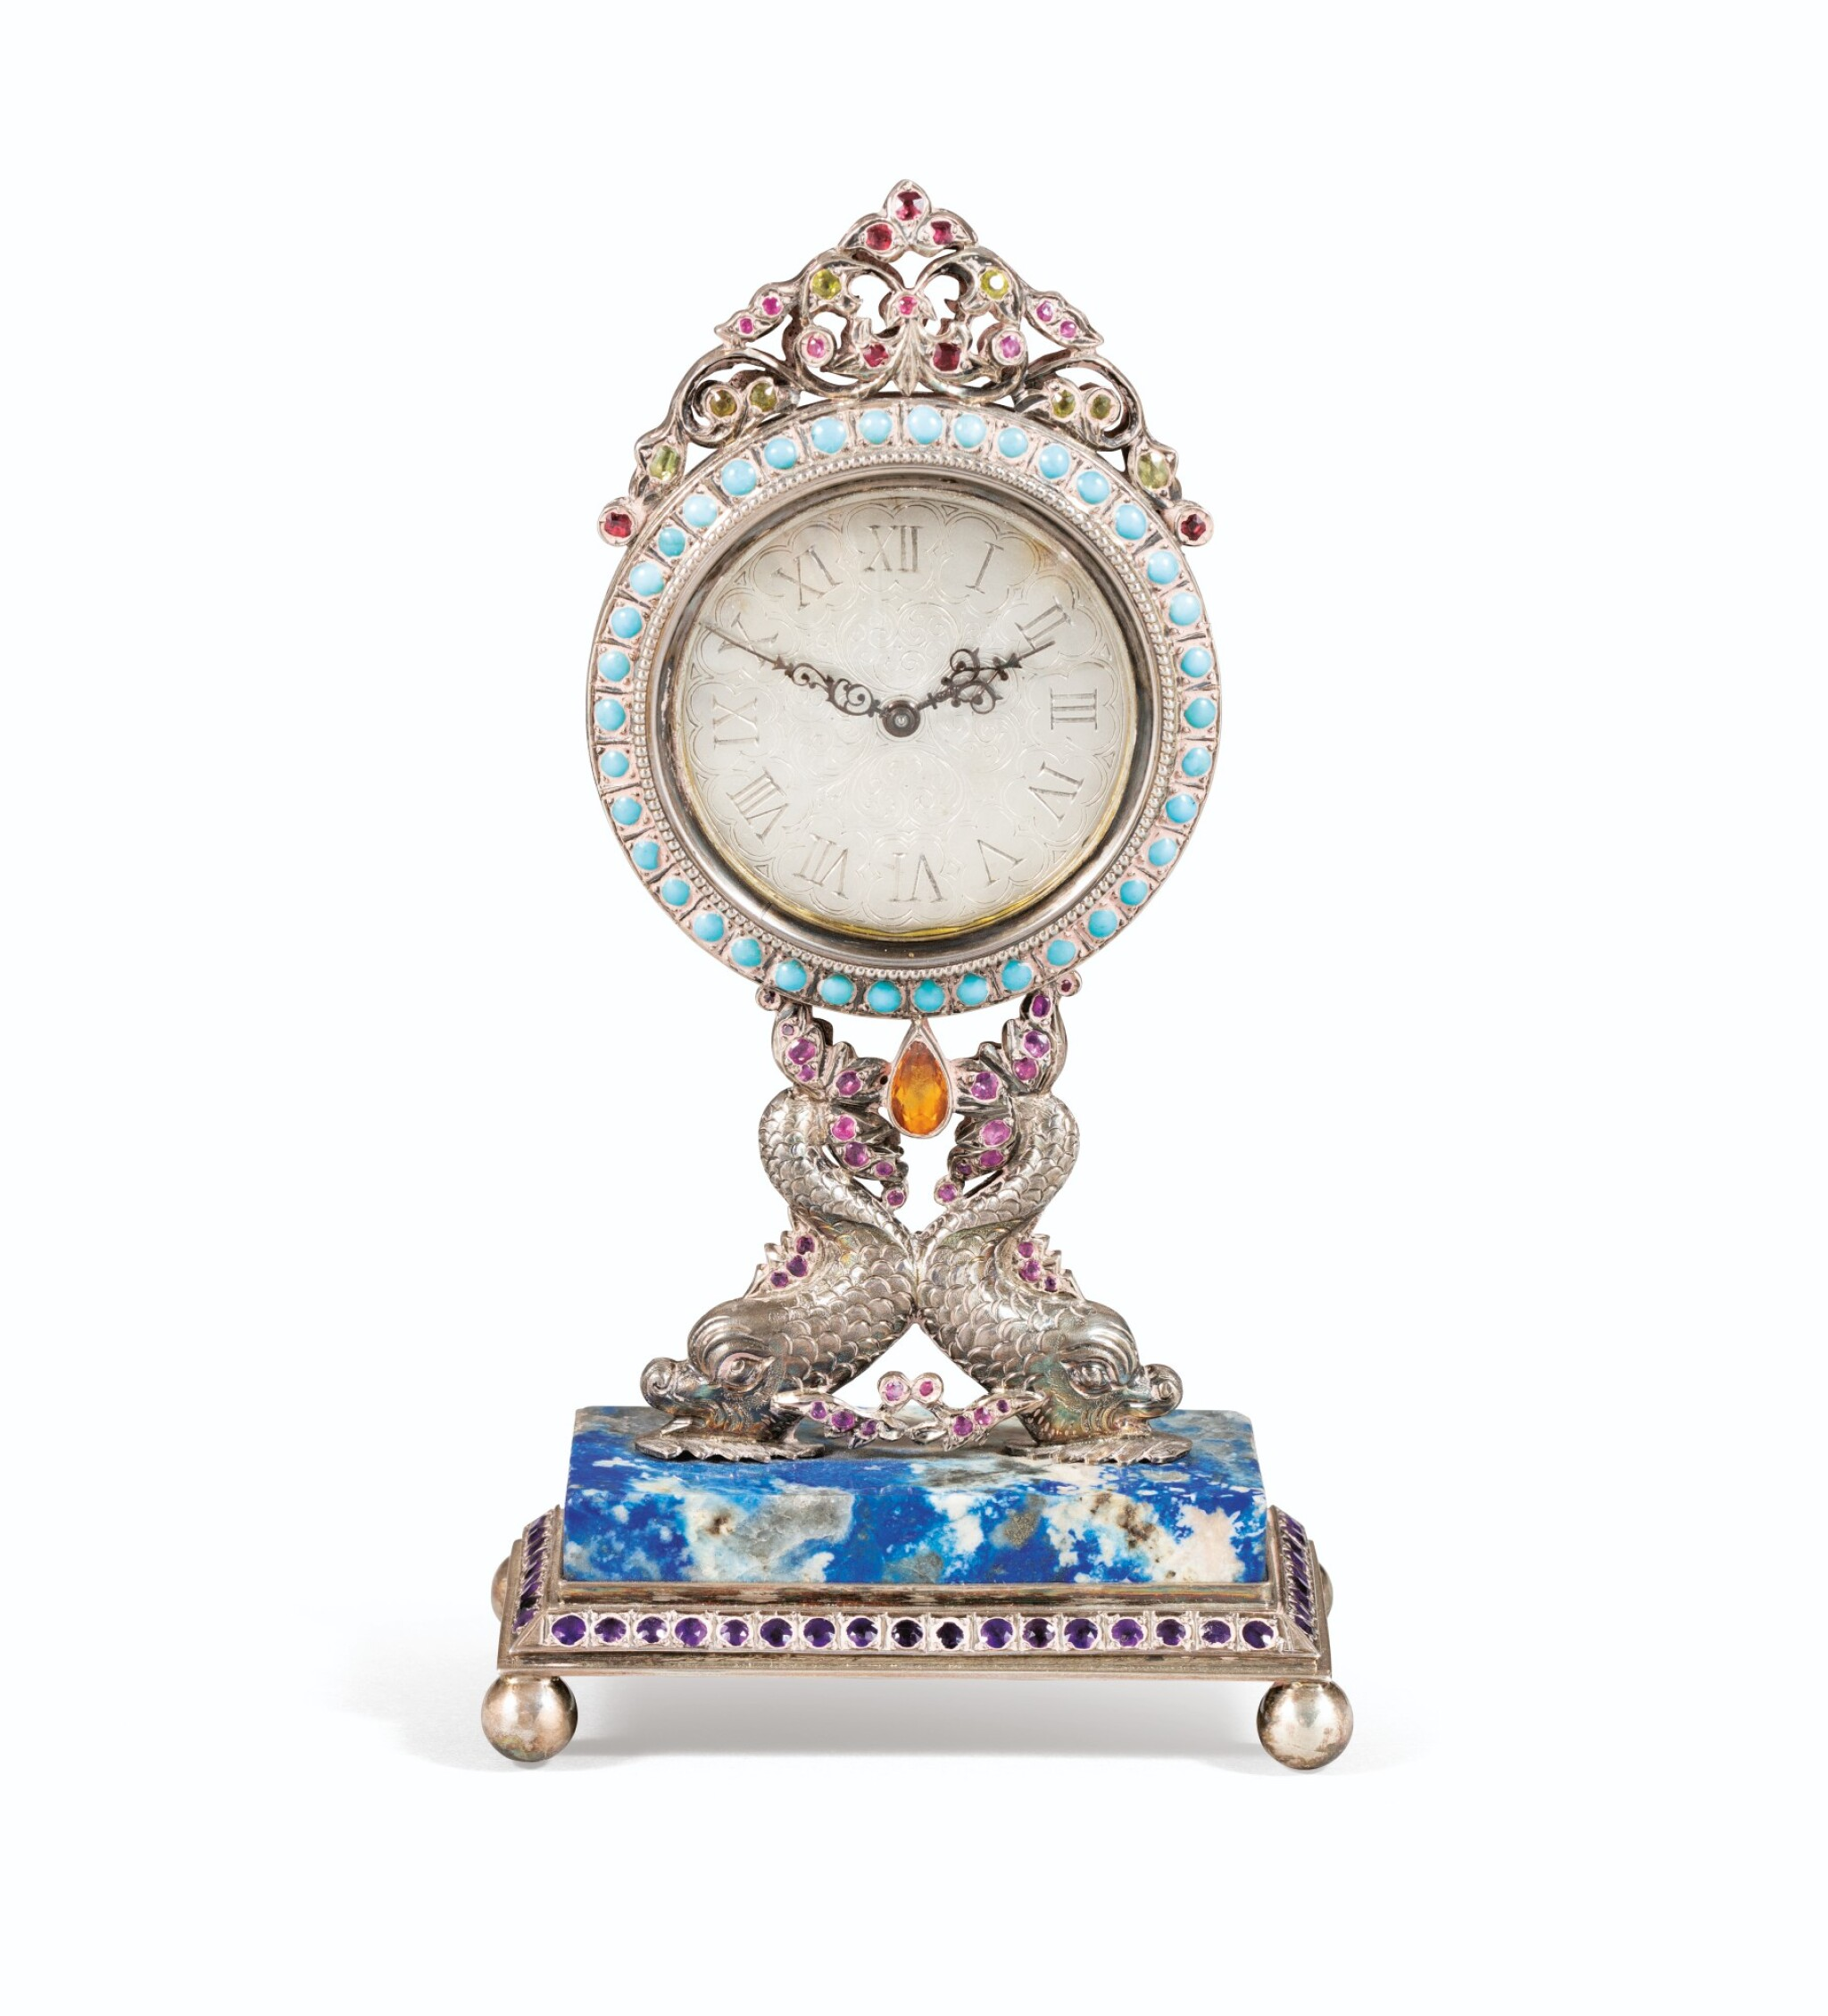 View full screen - View 1 of Lot 64. SMALL TABLE CLOCK IN SILVER AND VERMEIL, PROBABLY ITALY, 20TH CENTURY | PETITE PENDULE DE TABLE EN ARGENT ET VERMEIL, PROBABLEMENT ITALIE, XXÈME SIECLE.